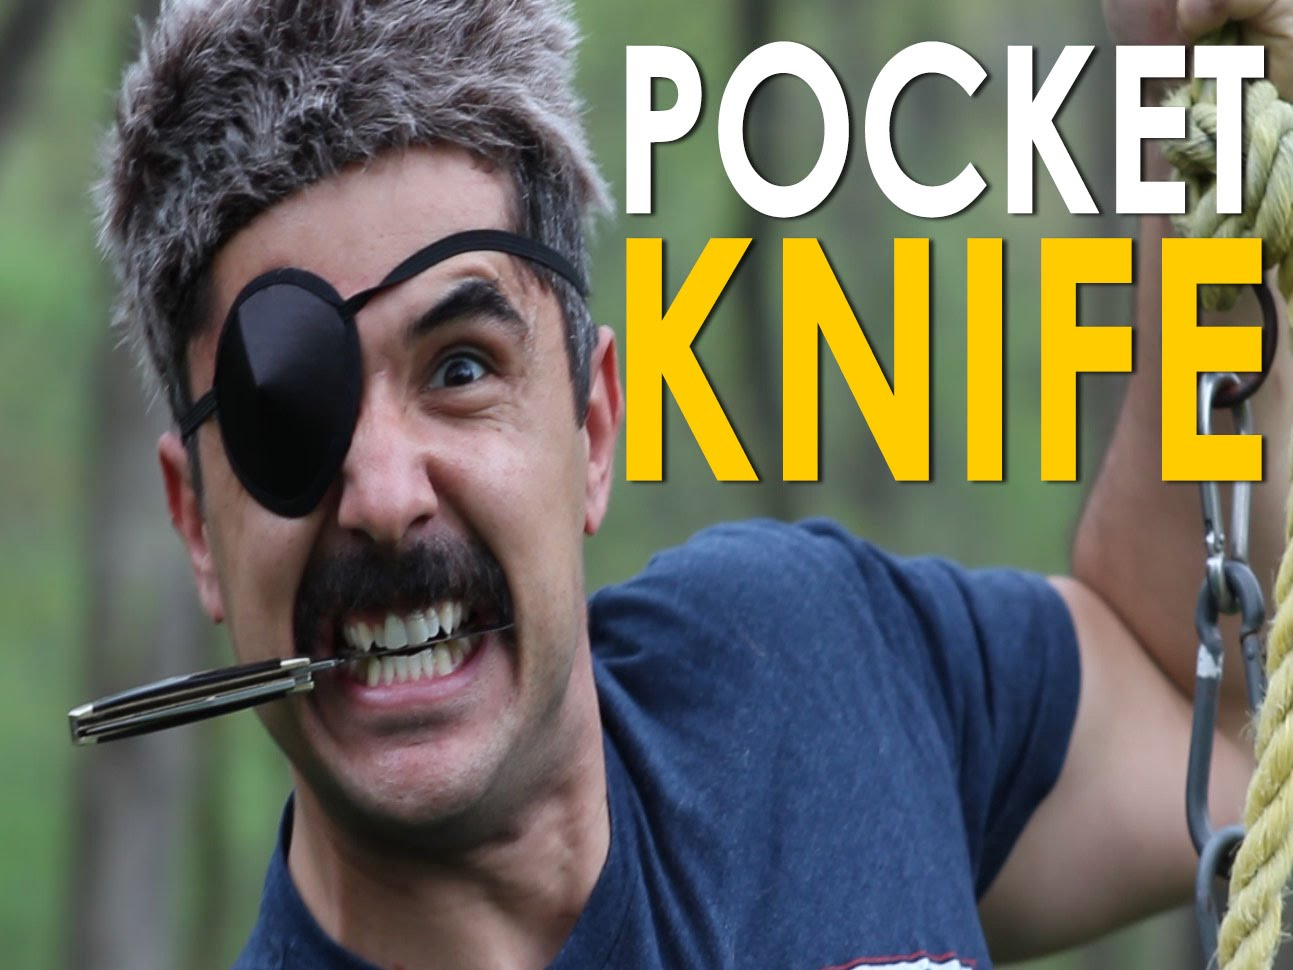 Uses For a Pocket Knife | The Art of Manliness